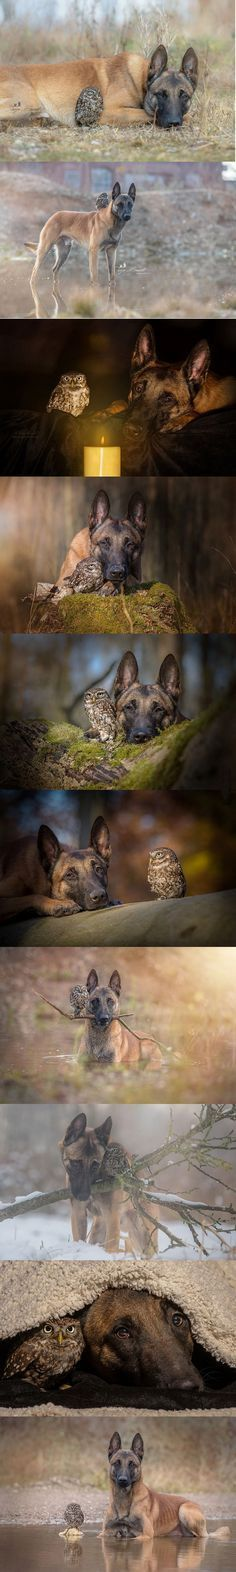 Credit to the photographer Tanja Brandt.